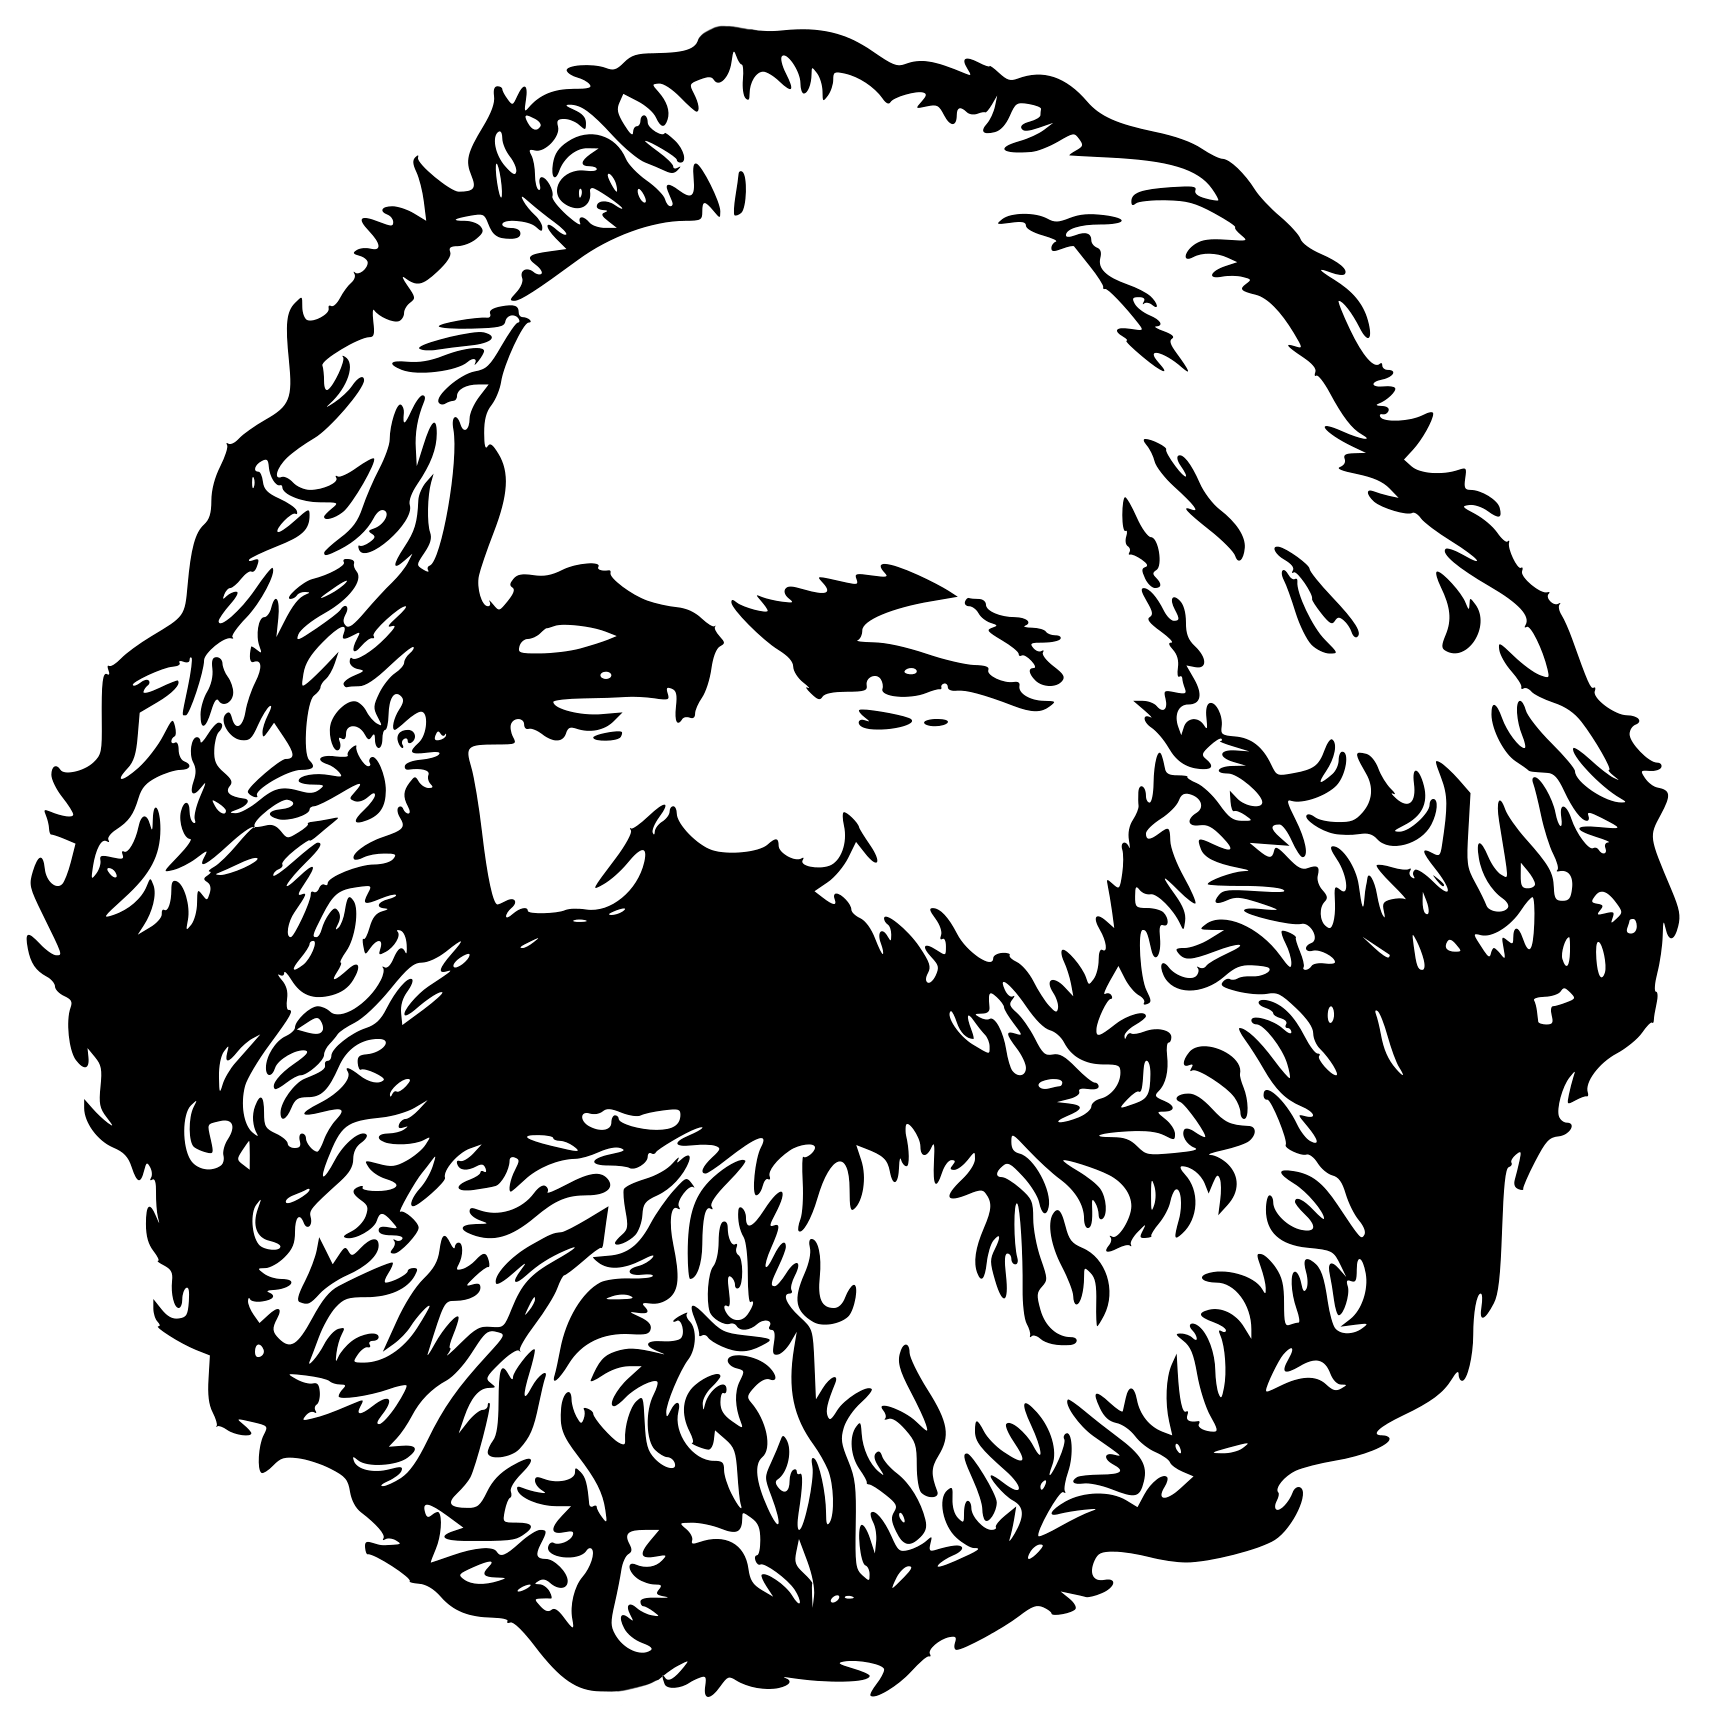 karl marx engaging thinkers The young karl marx is a masterpiece with enough balance between the capers of two men desperate to provoke or invoke change and the society that is holding on, resisting change as it struggles against the struggles and plight of the working class.